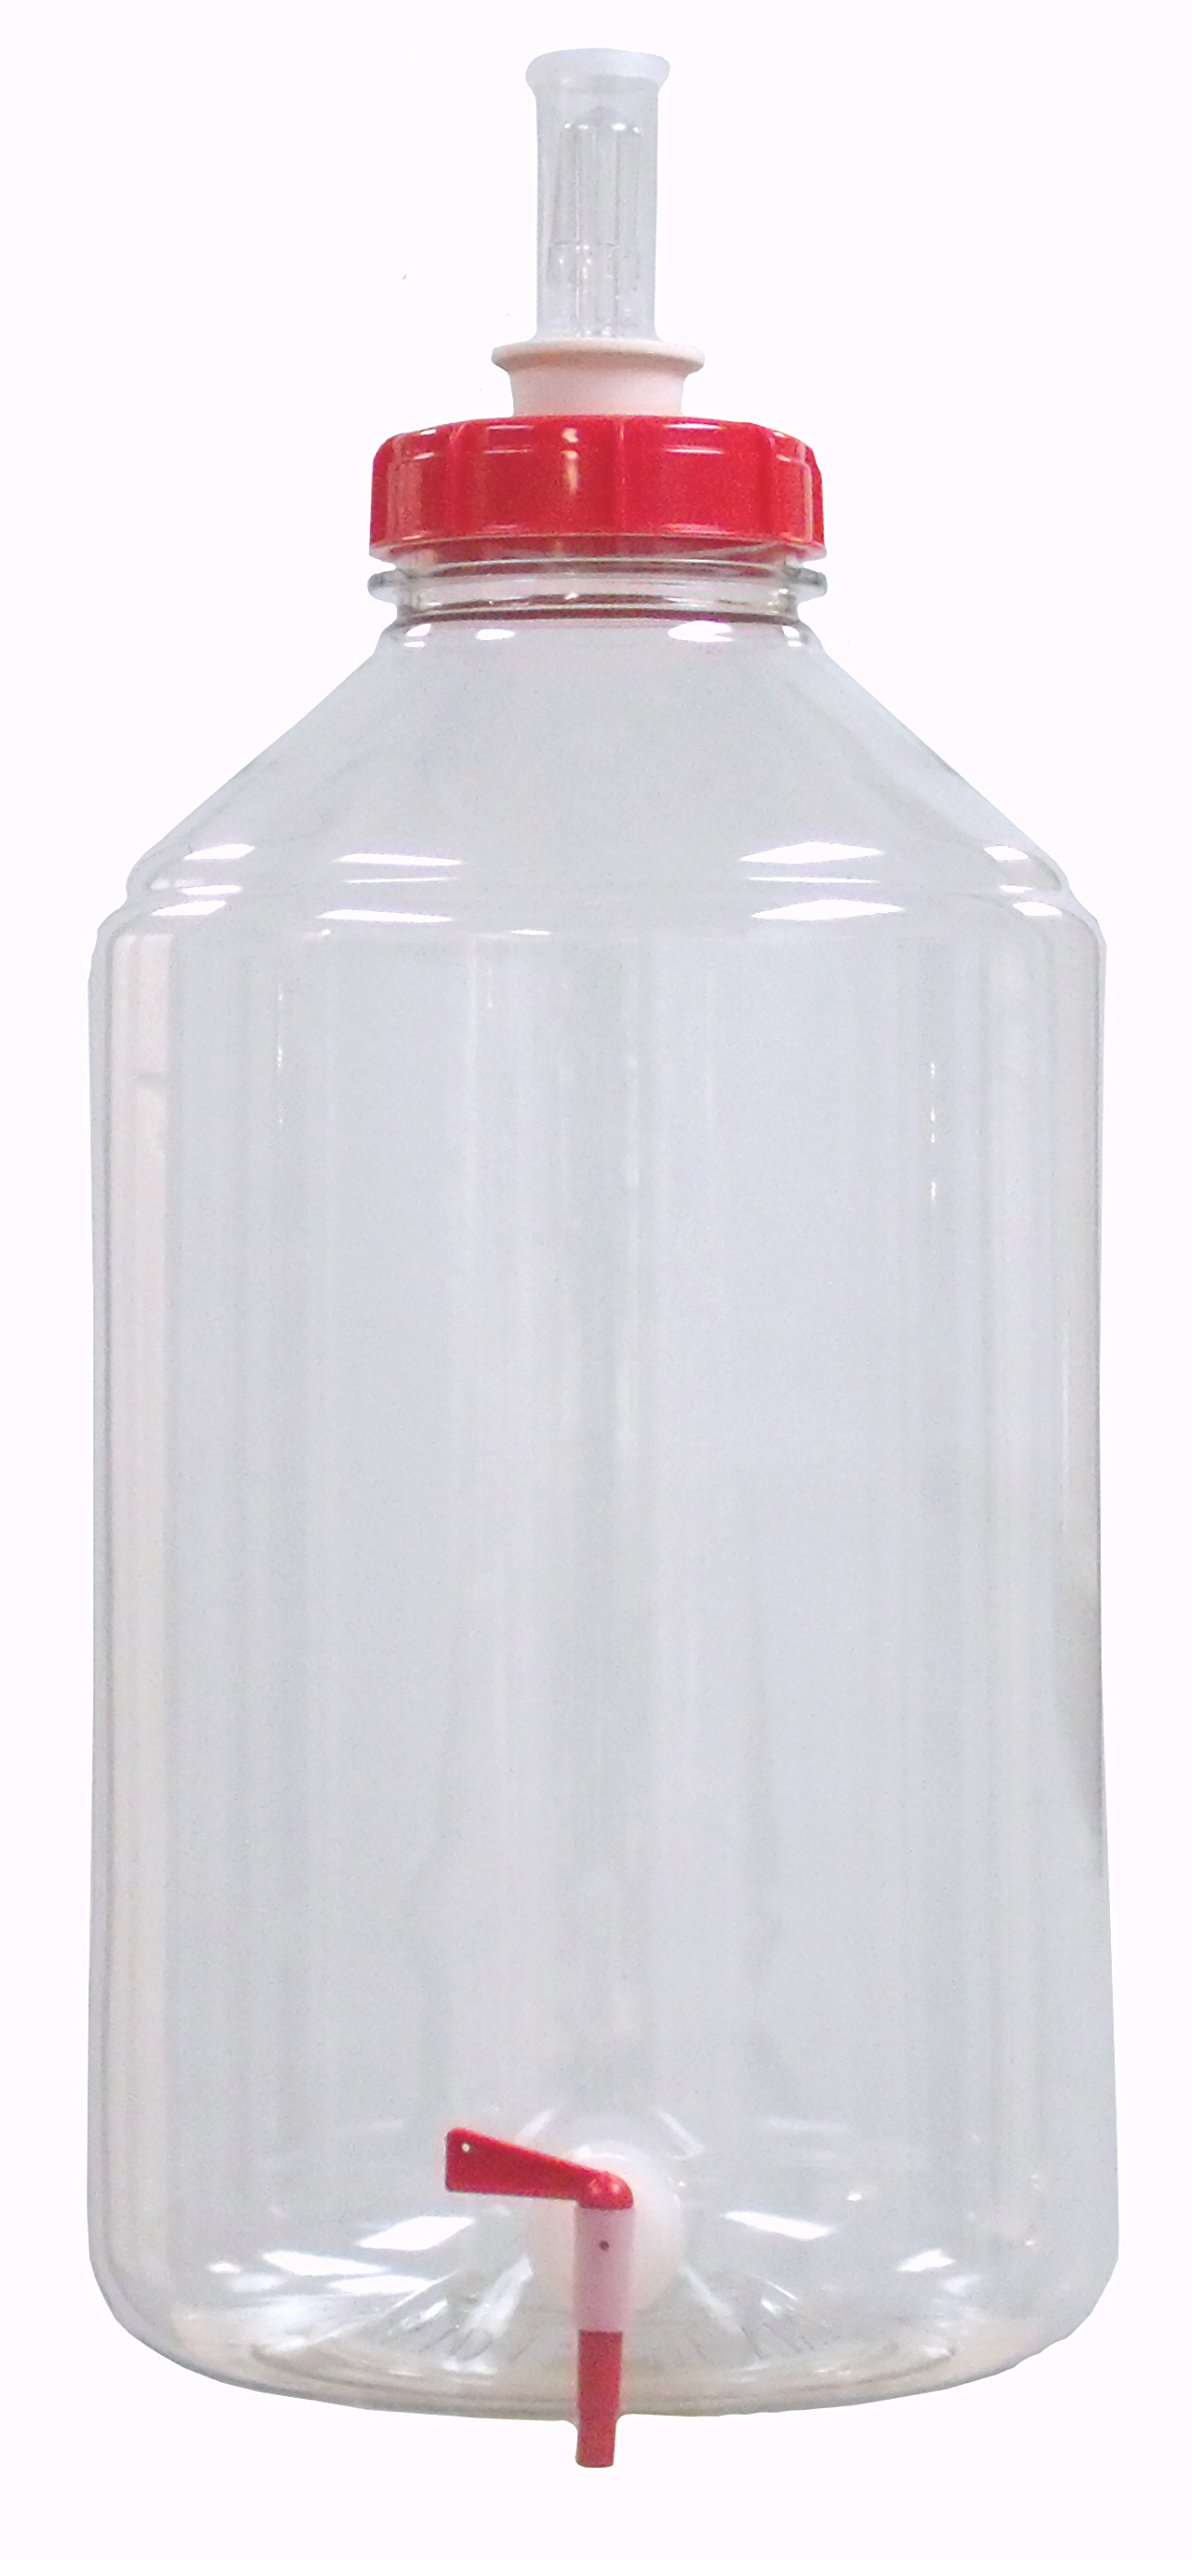 Fermonster 7 Gallon Wide Mouth Plastic Fermenter with Spigot, Stopper, & Air Lock